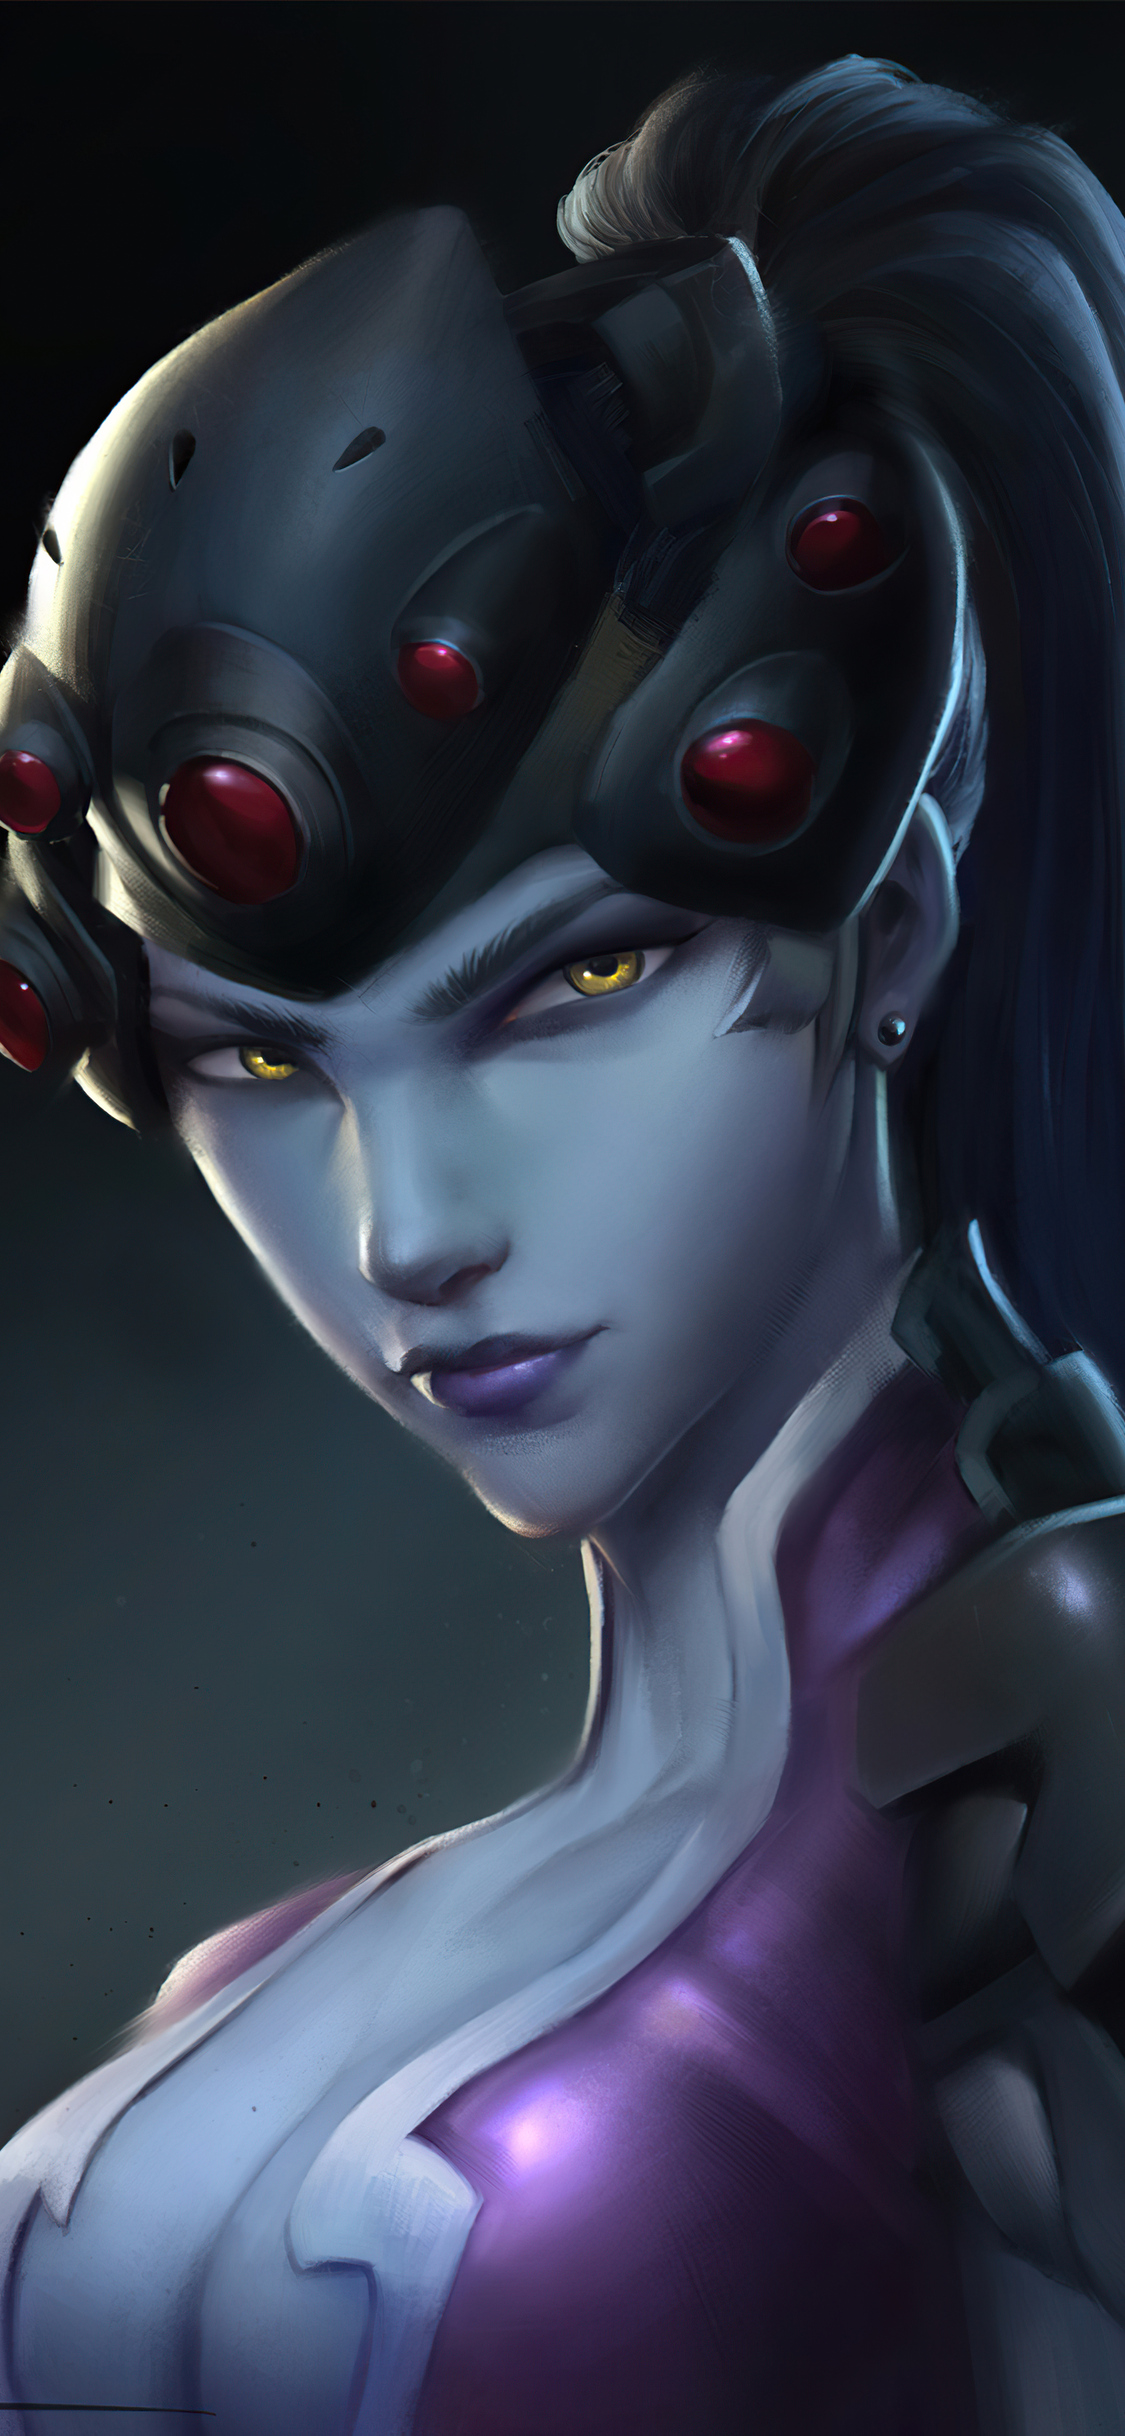 widowmaker-brown-eyes-4k-5q.jpg